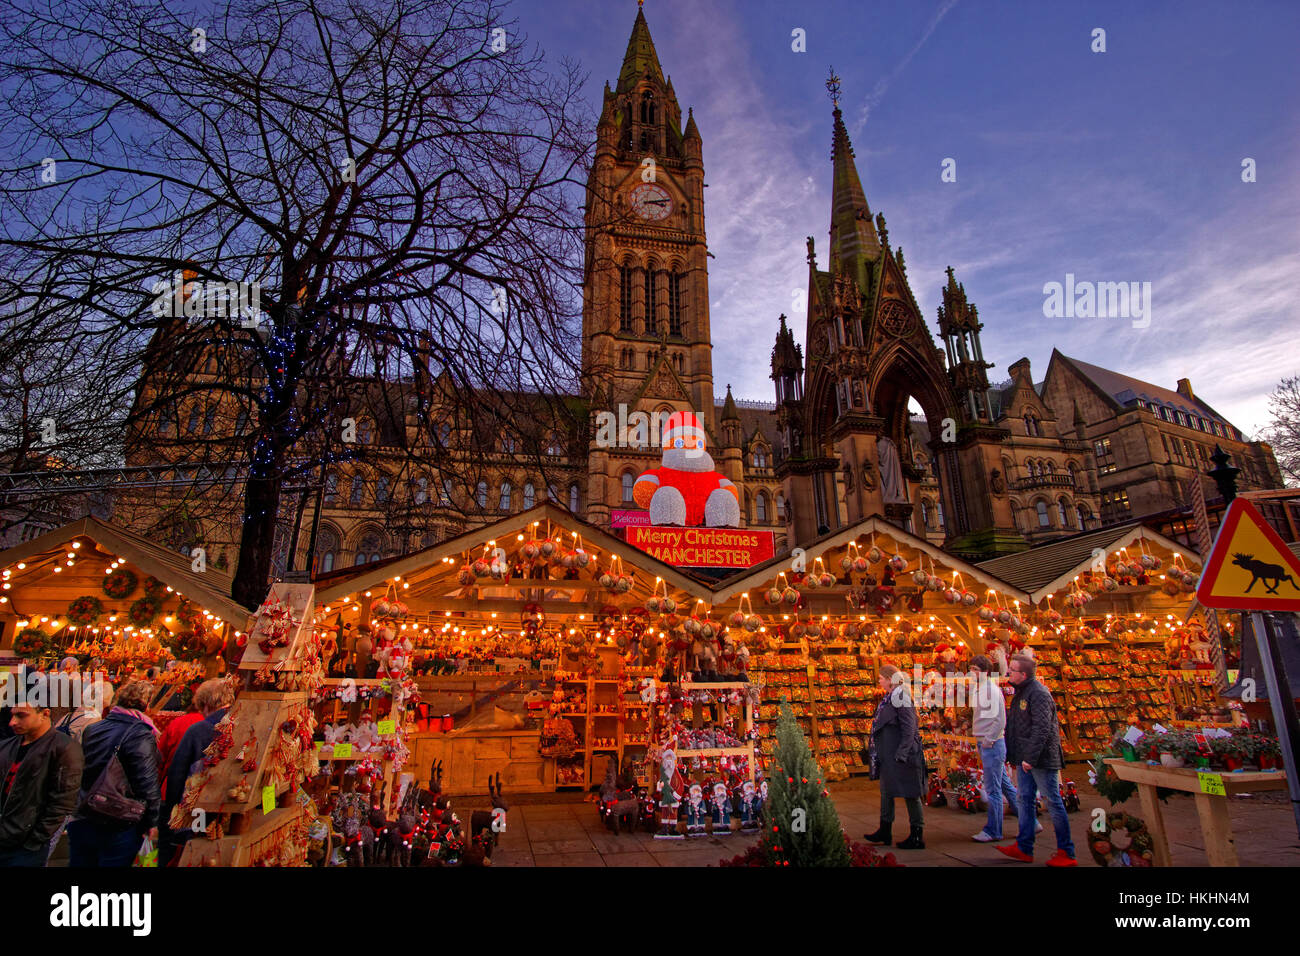 Manchester Christmas Market and Town Hall at Albert Square, Manchester Town Centre, Greater Manchester. England. - Stock Image